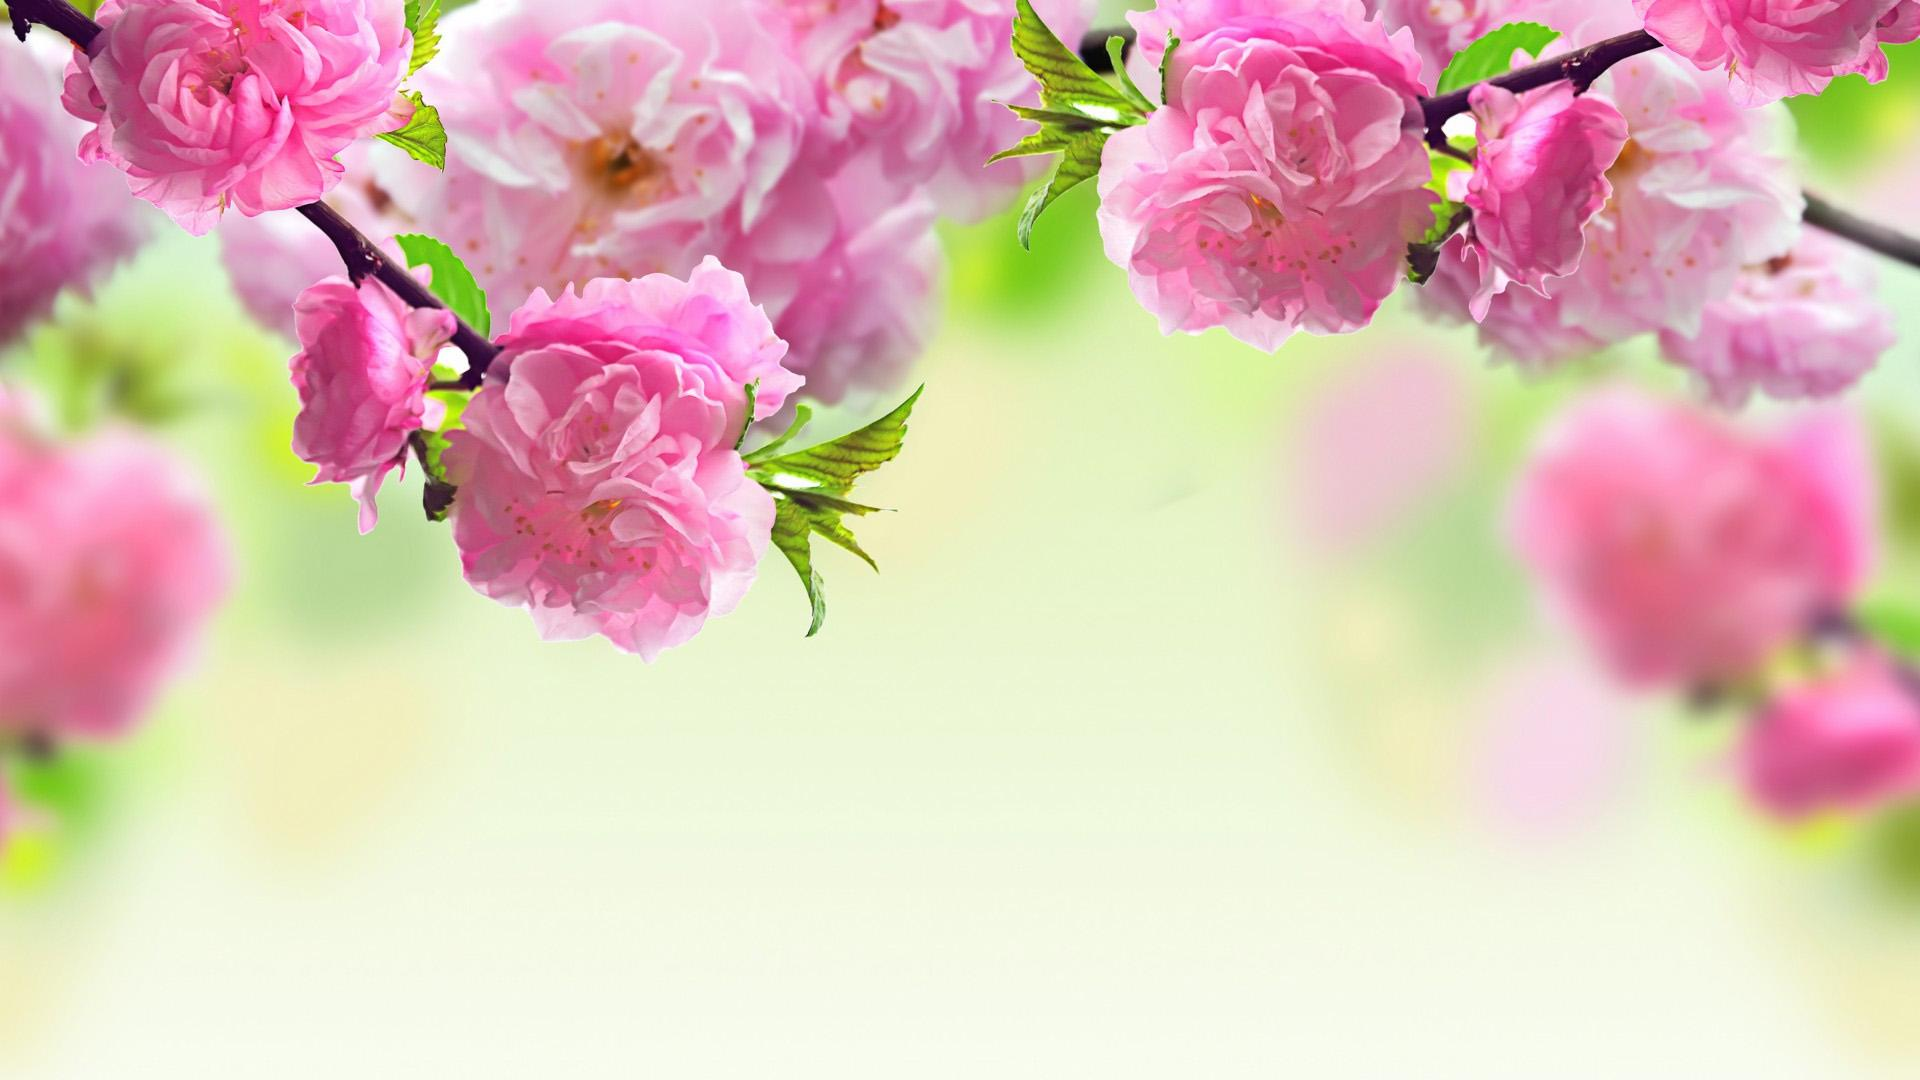 Spring background download 1920x1080